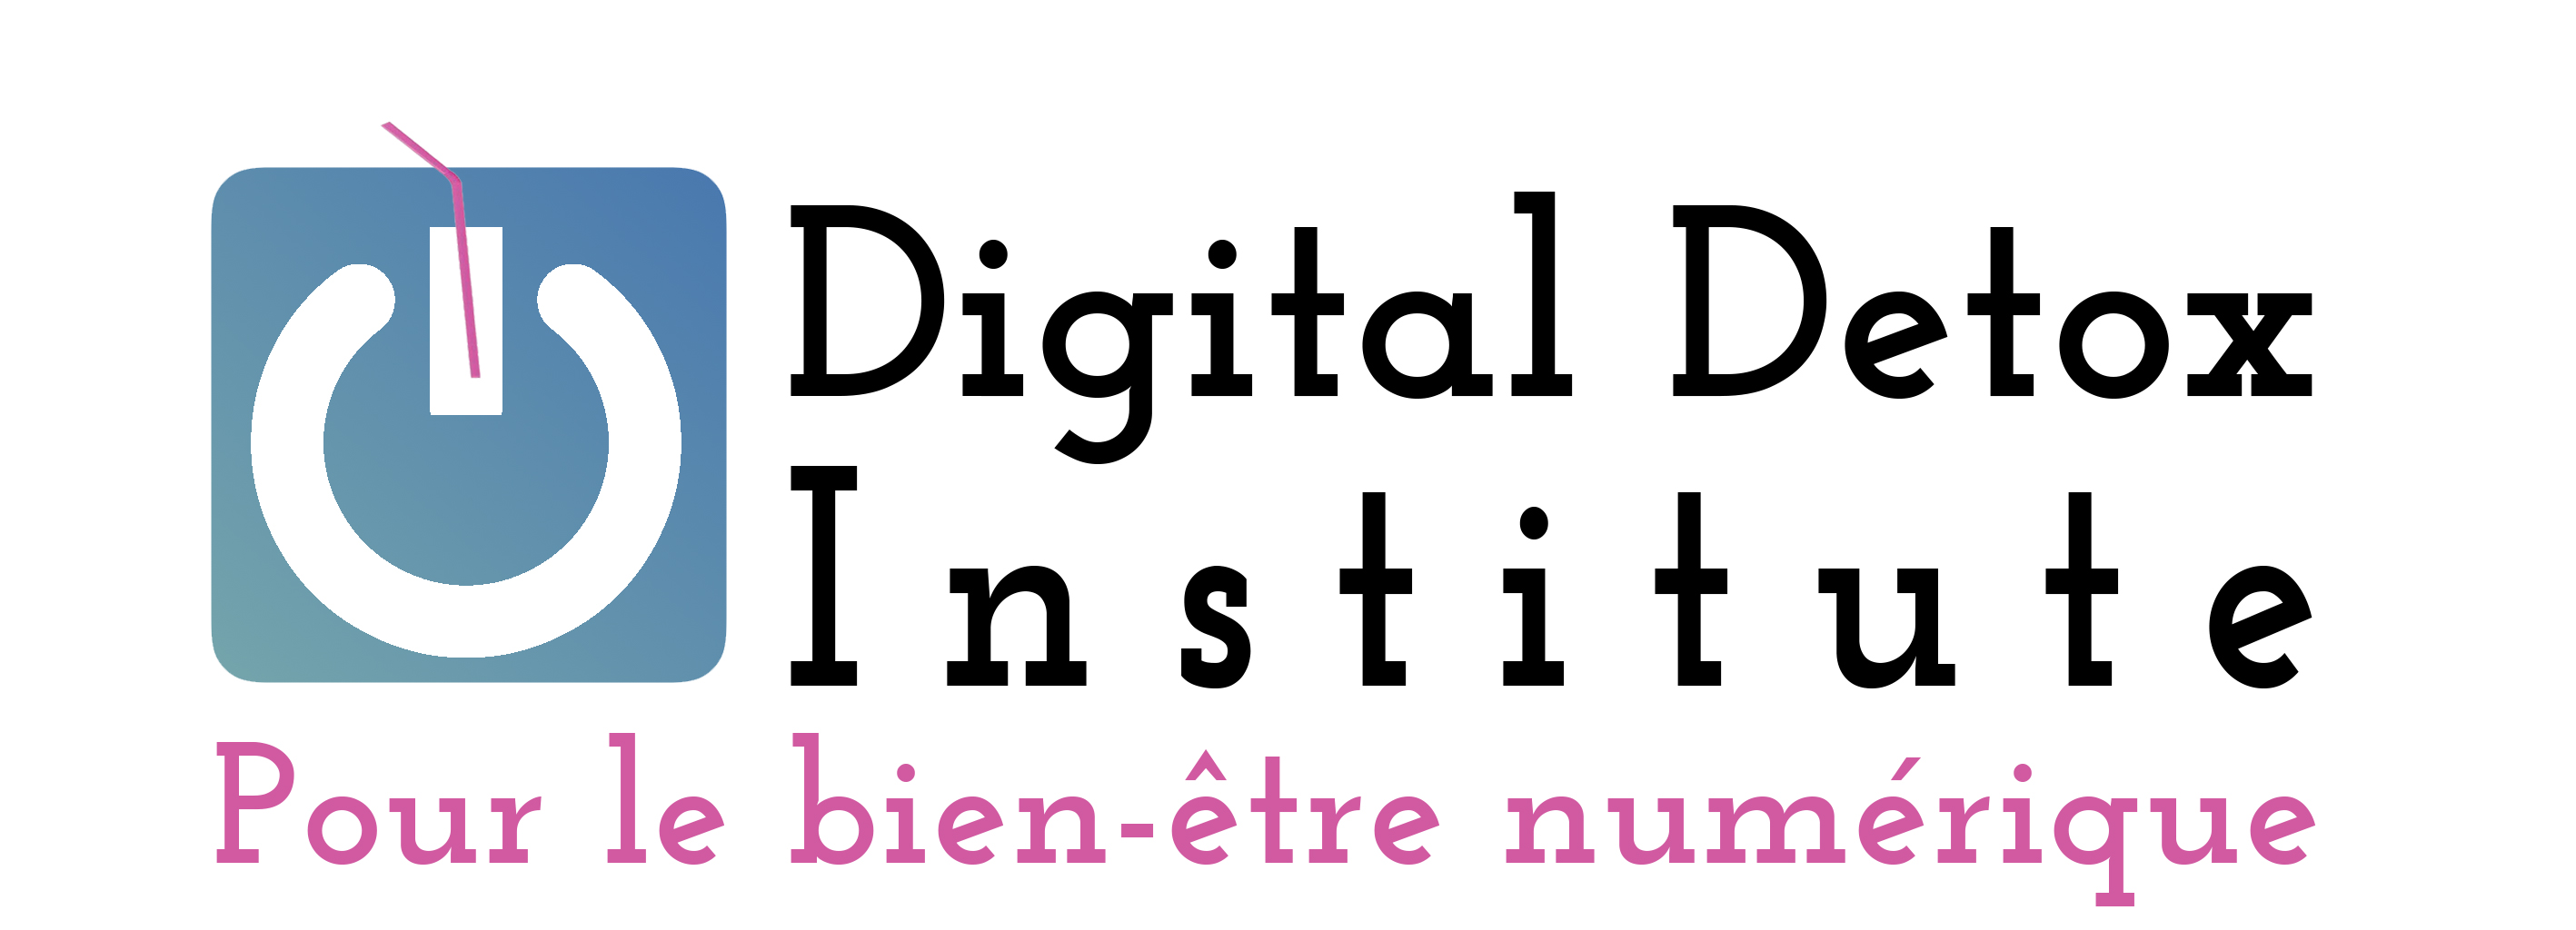 Digital Detox Institute